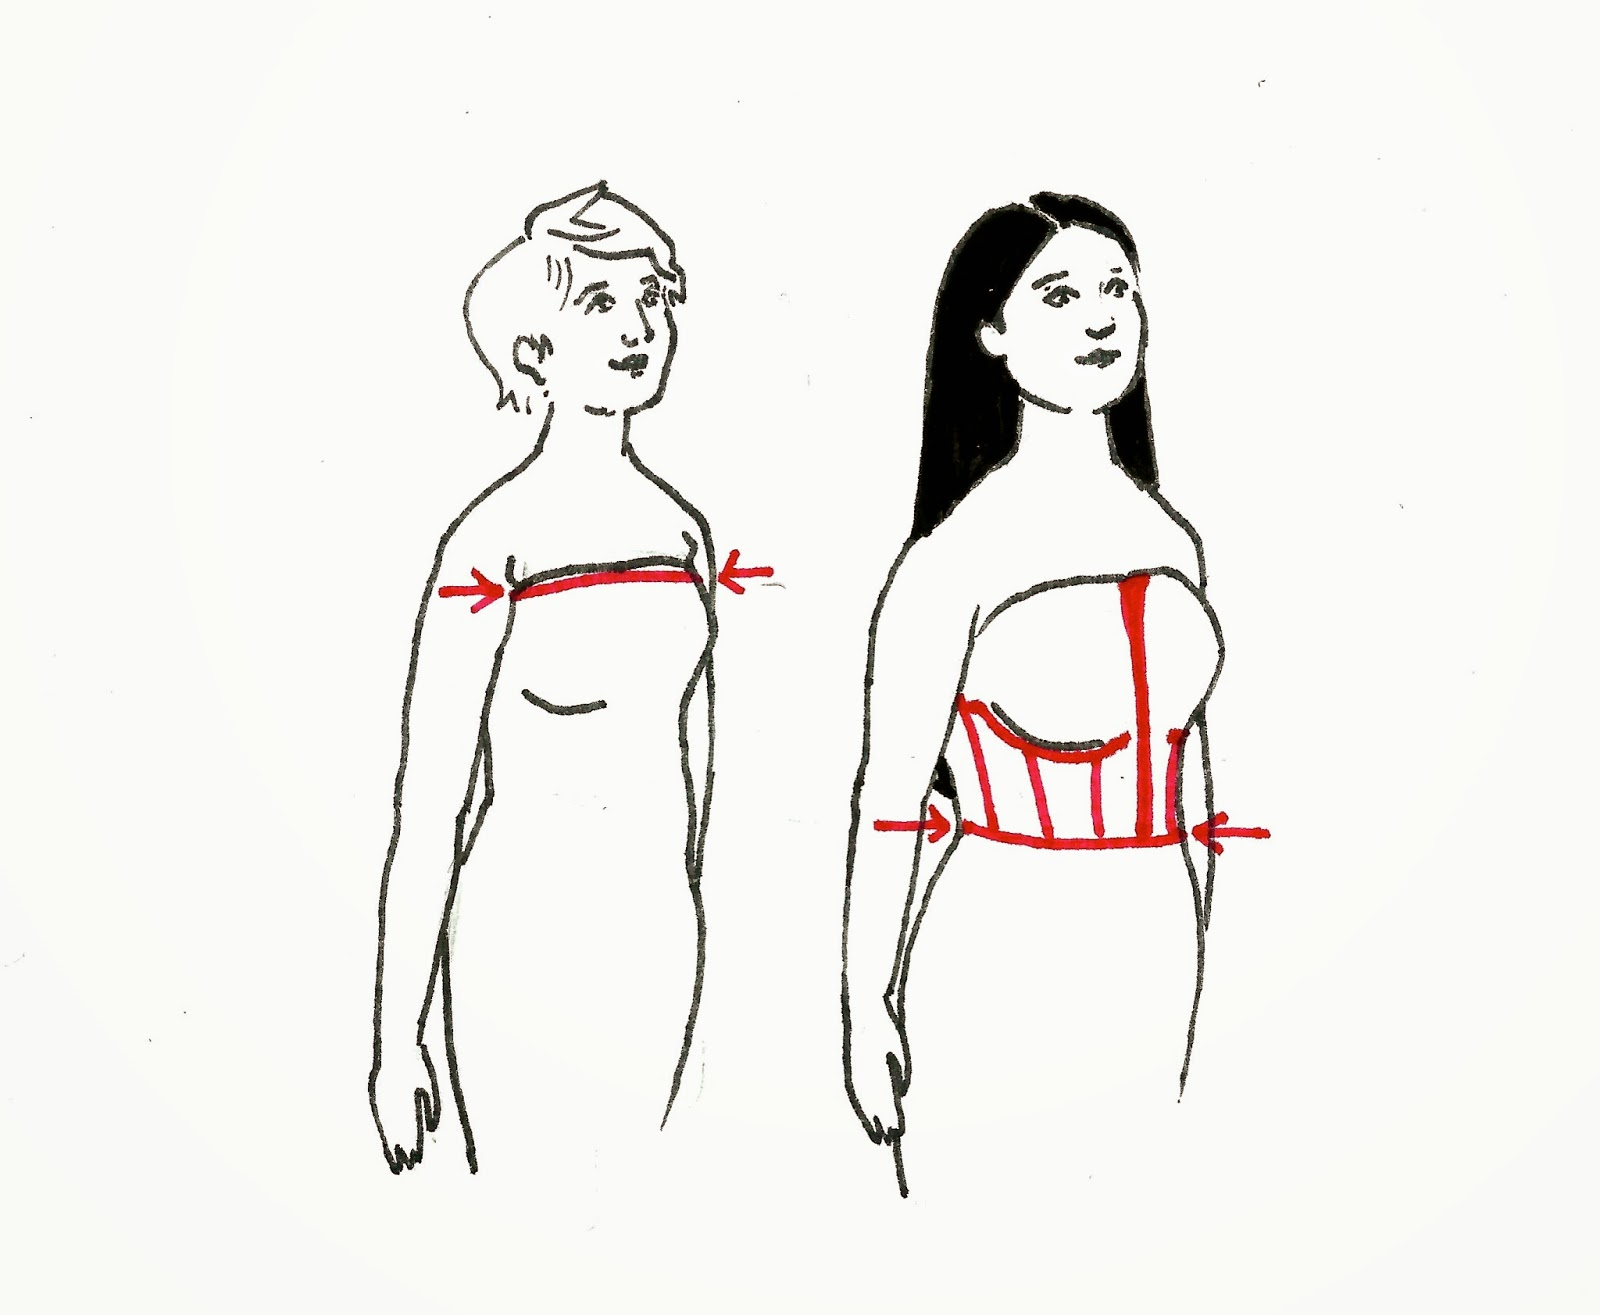 Illustration of two women with points marked at their waists in red.